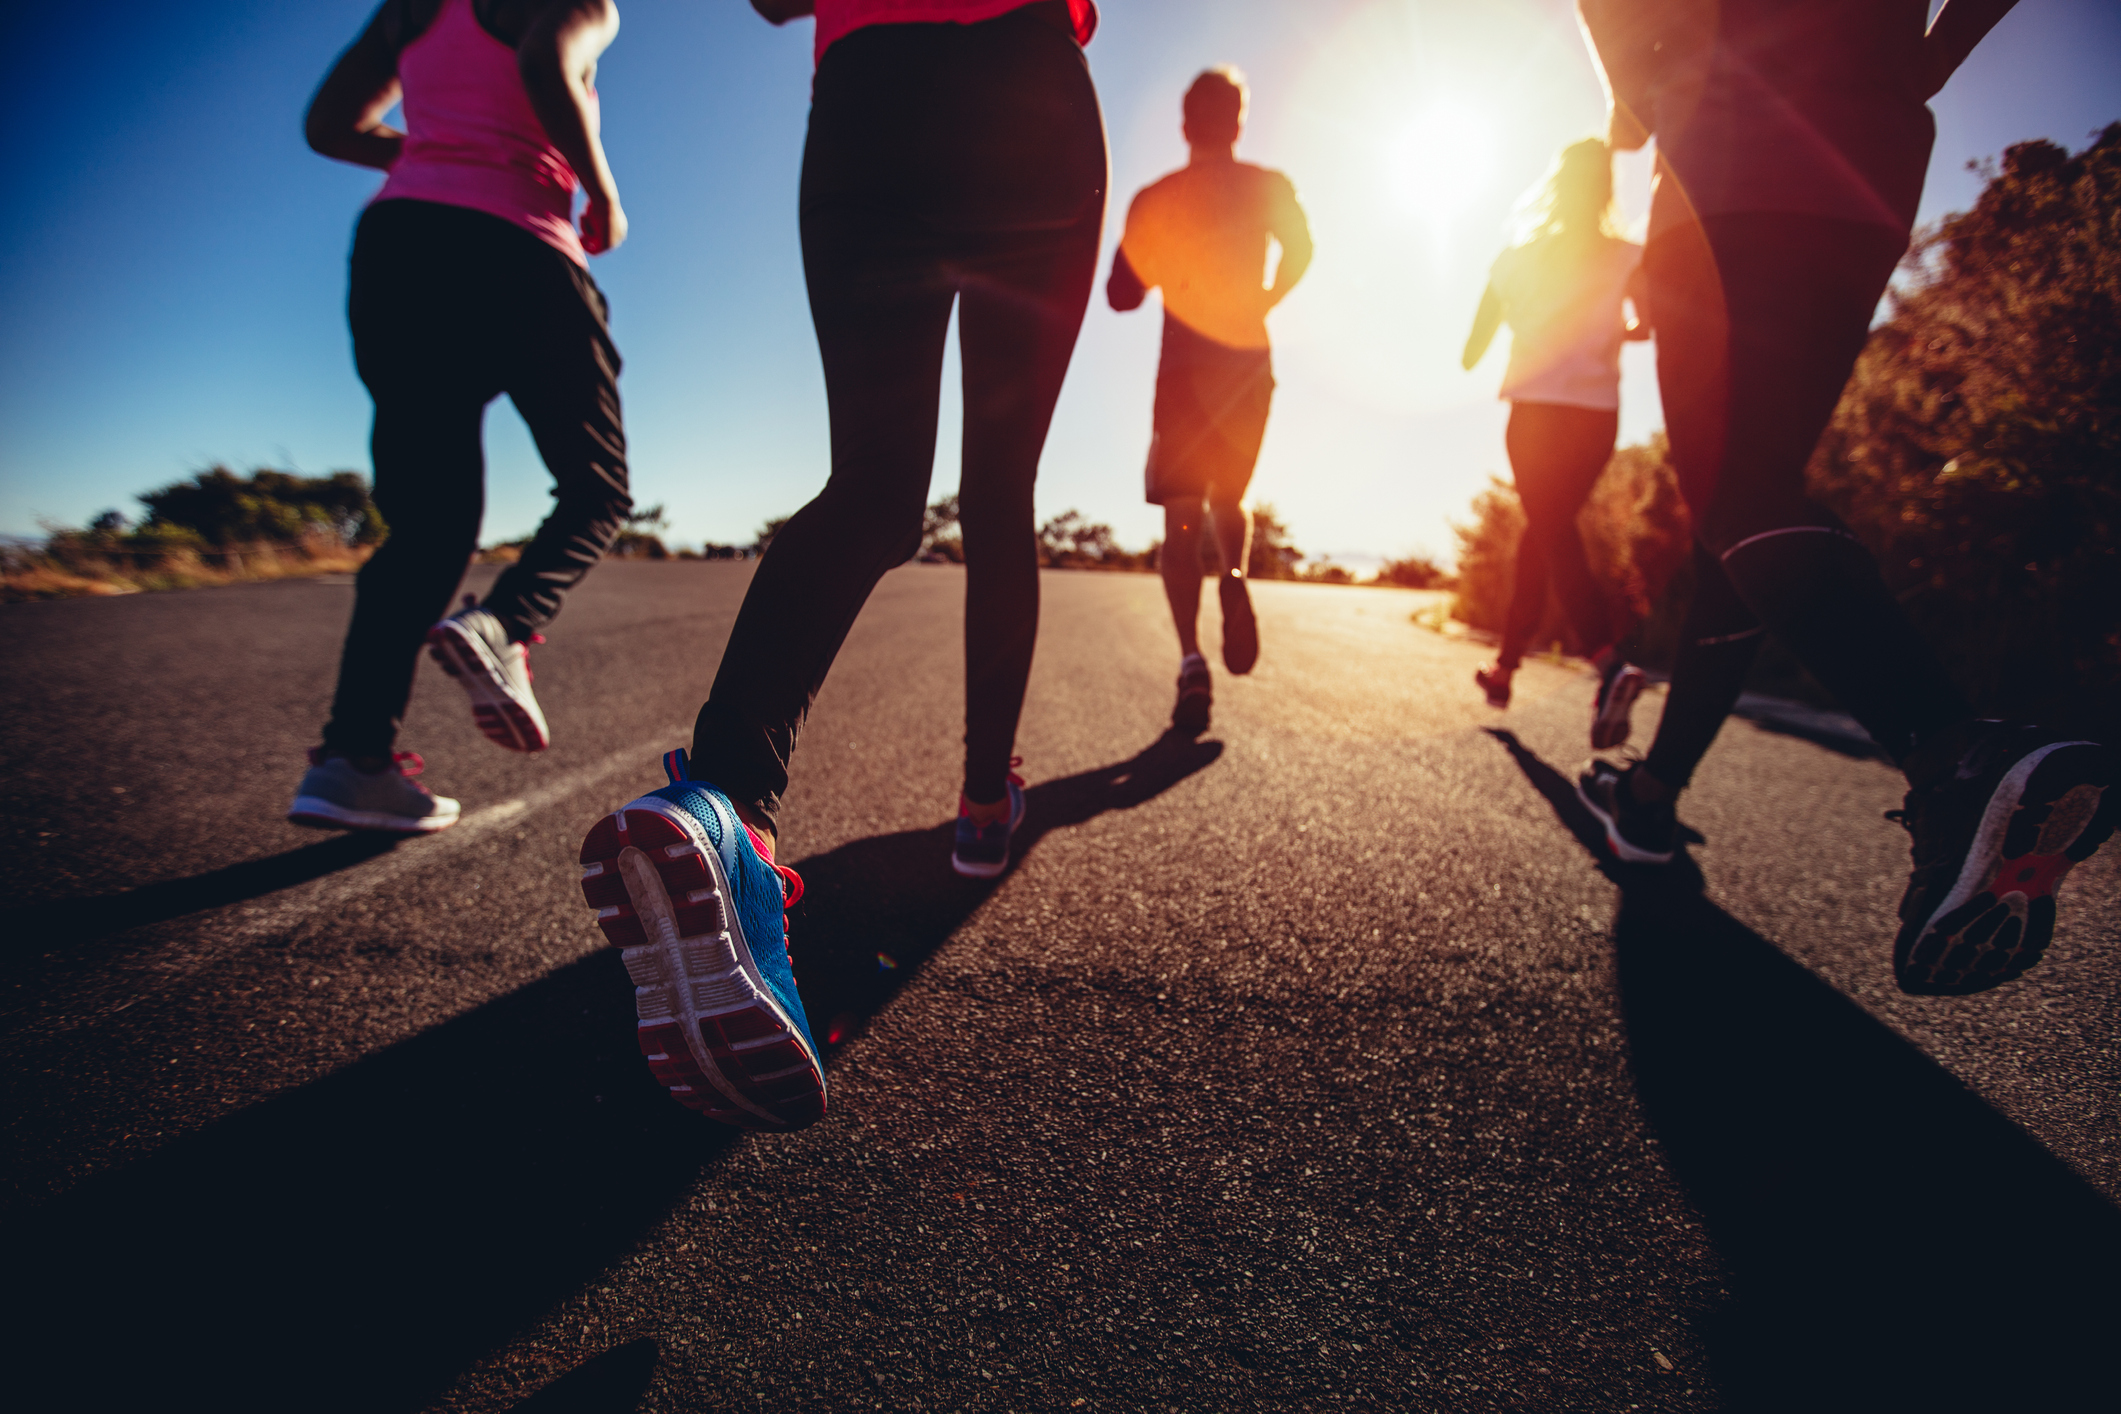 athletes-doing-a-jogging-workout-outdoorsjpg